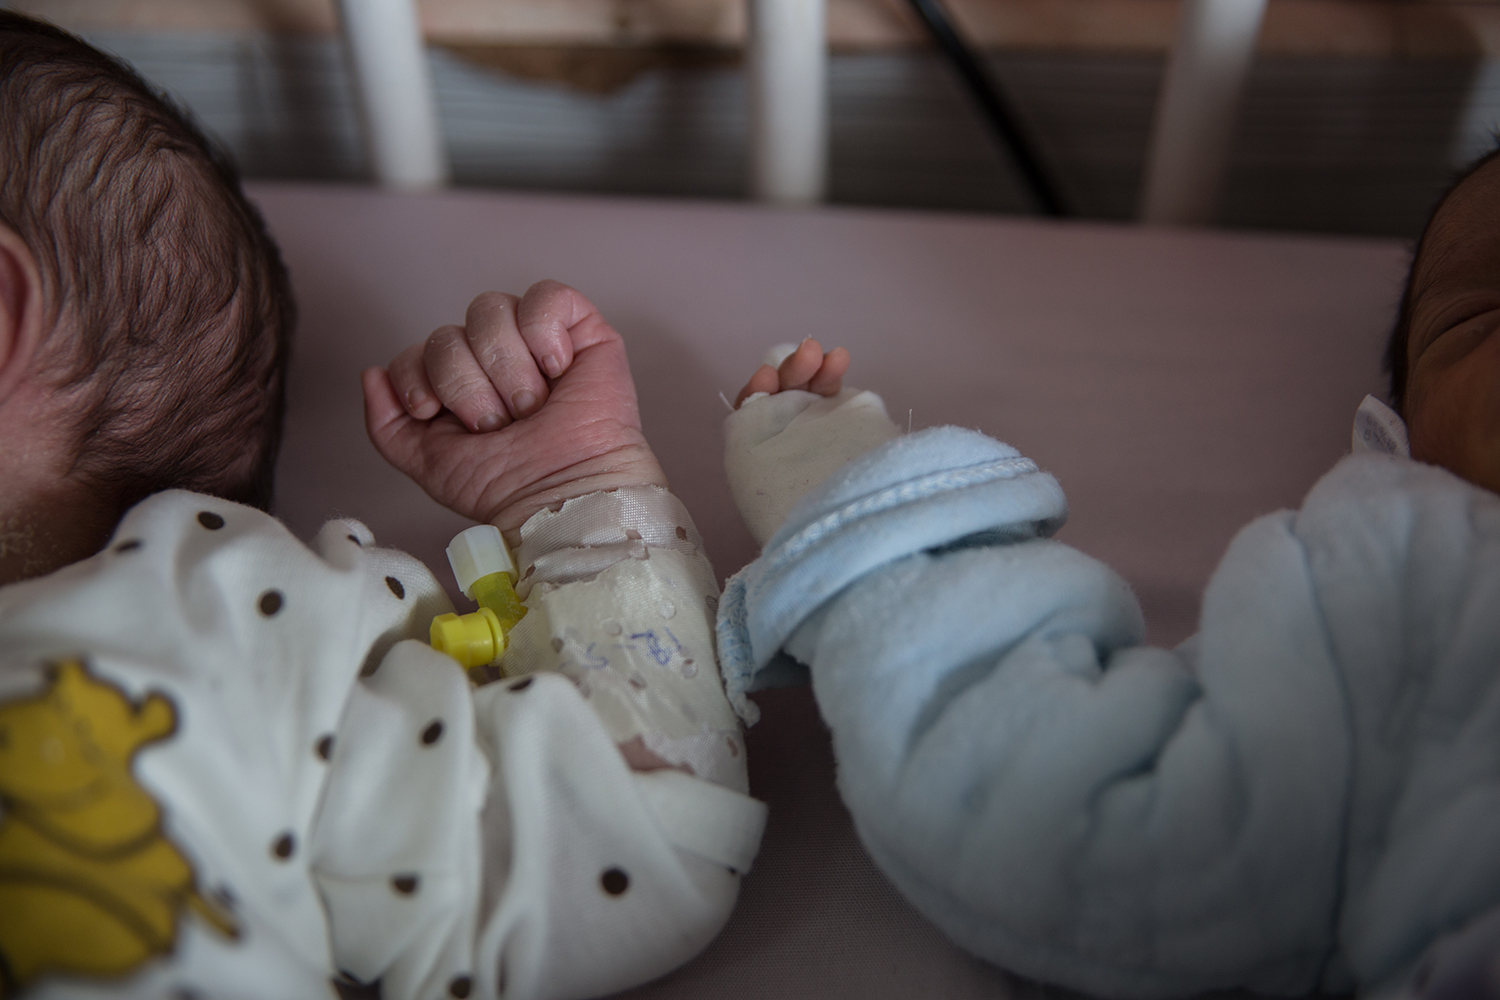 Newborn babies—whose mothers have not been found yet—lie at Ataturk Hospital in Kabul on May 13 after the maternity ward attack.